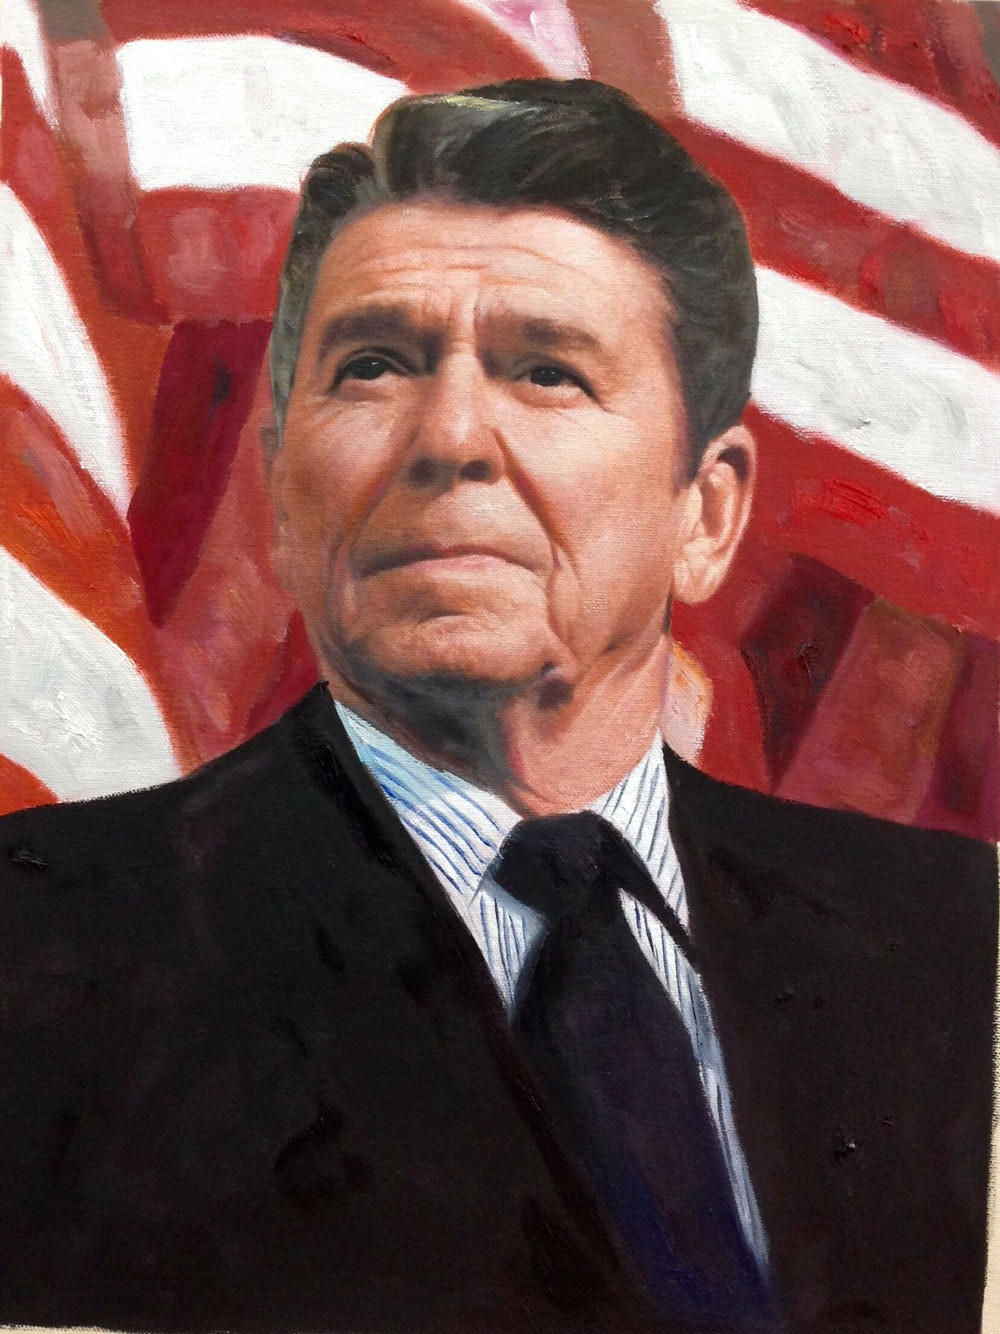 Custom Ronald Reagan Mixed-Media Portrait Oil Painting